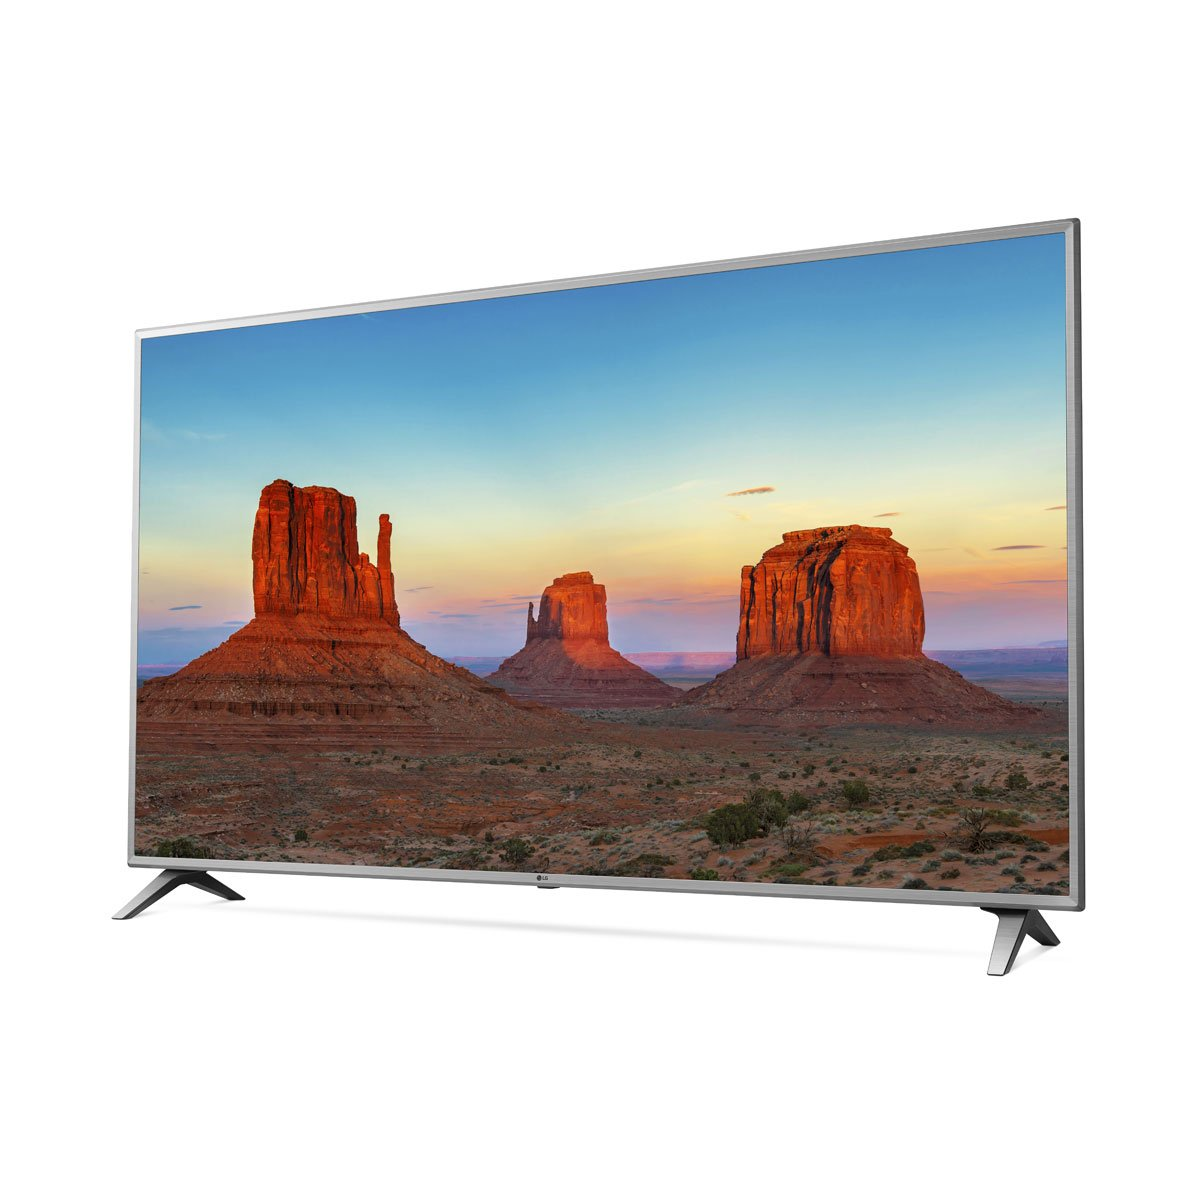 Pantalla led lg 75 4k s per uhd 75uk6570pua sears com for Aqui sus muebles